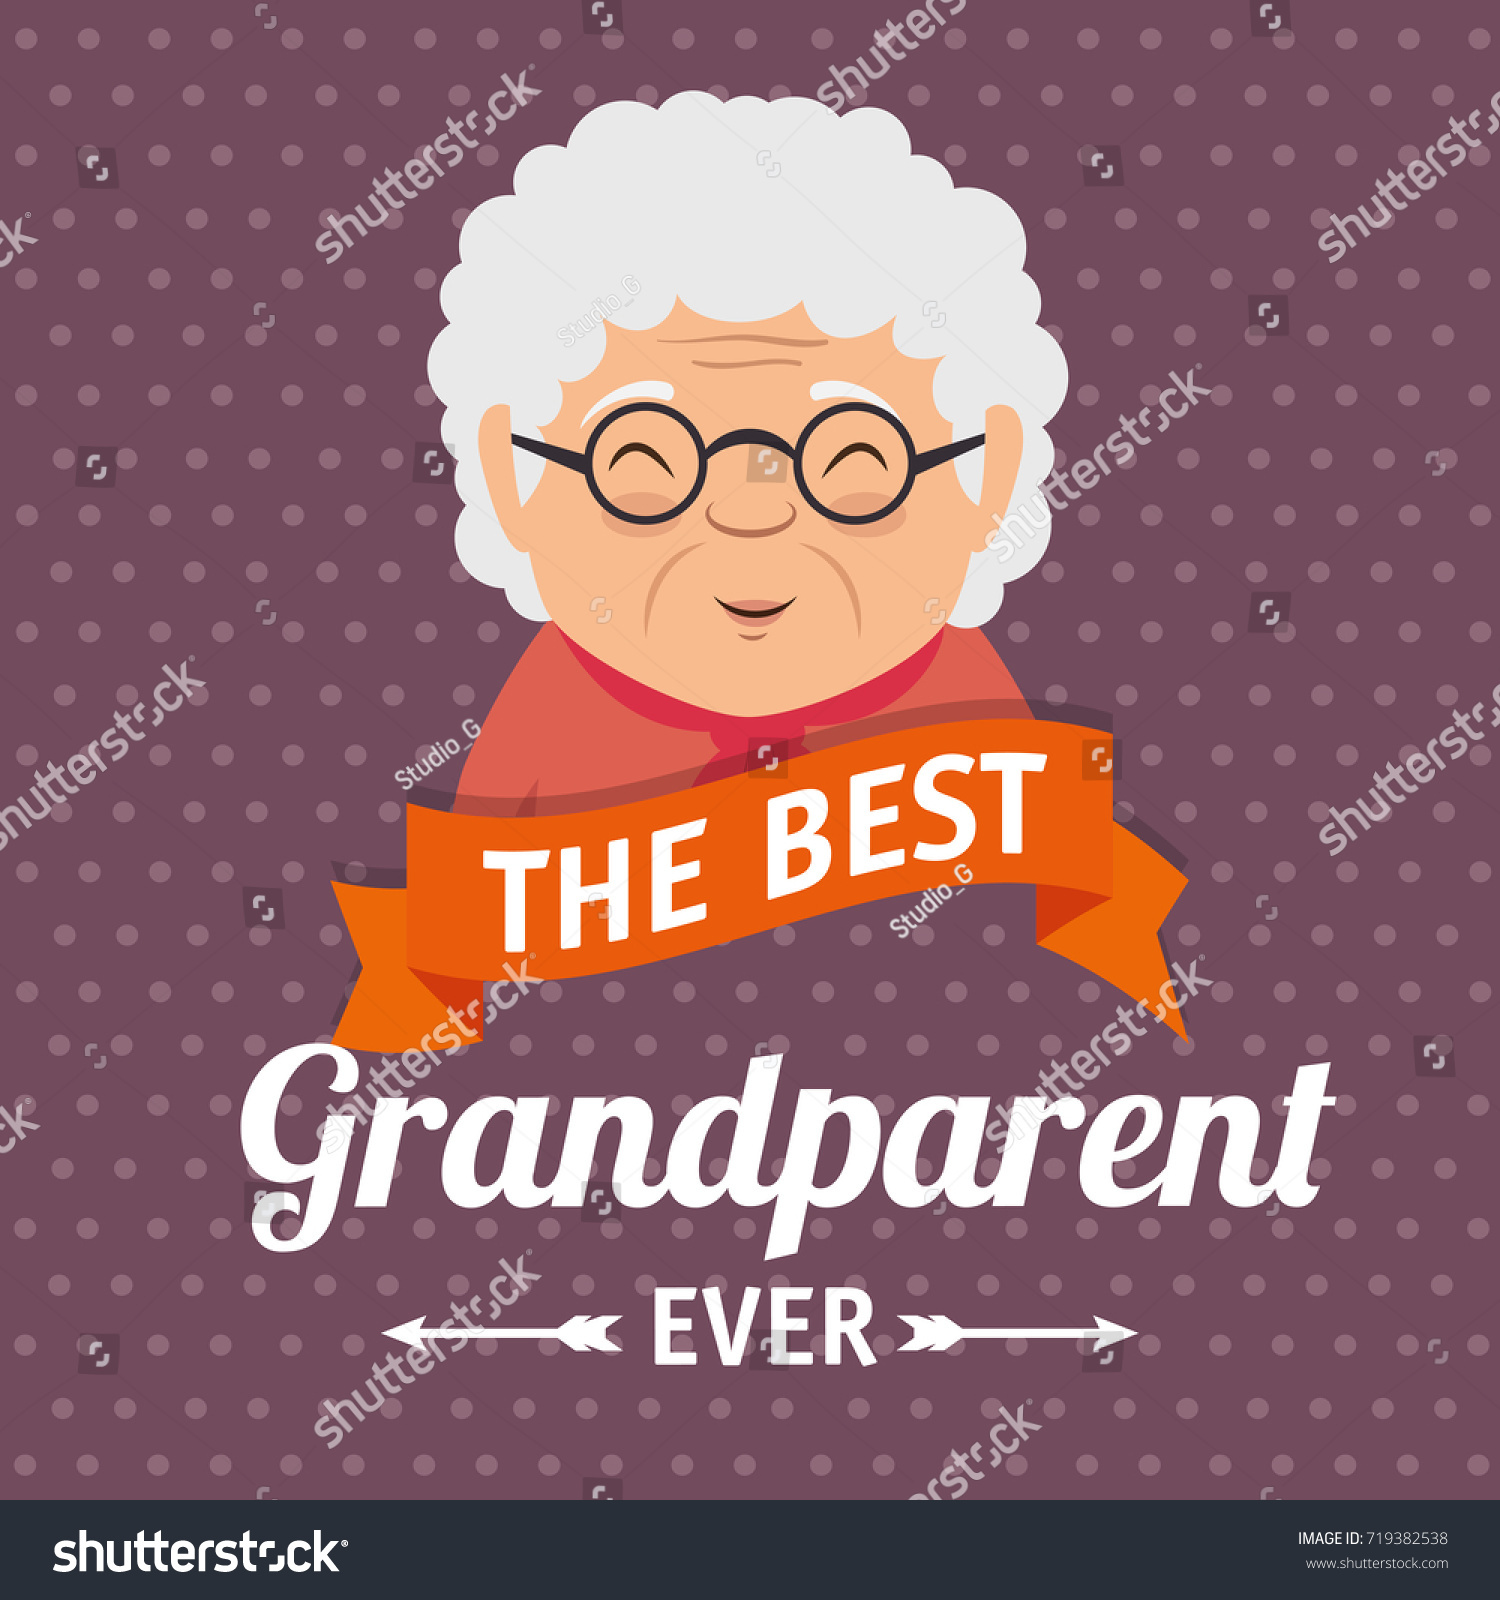 Grandparents day greeting card stock vector royalty free 719382538 grandparents day greeting card m4hsunfo